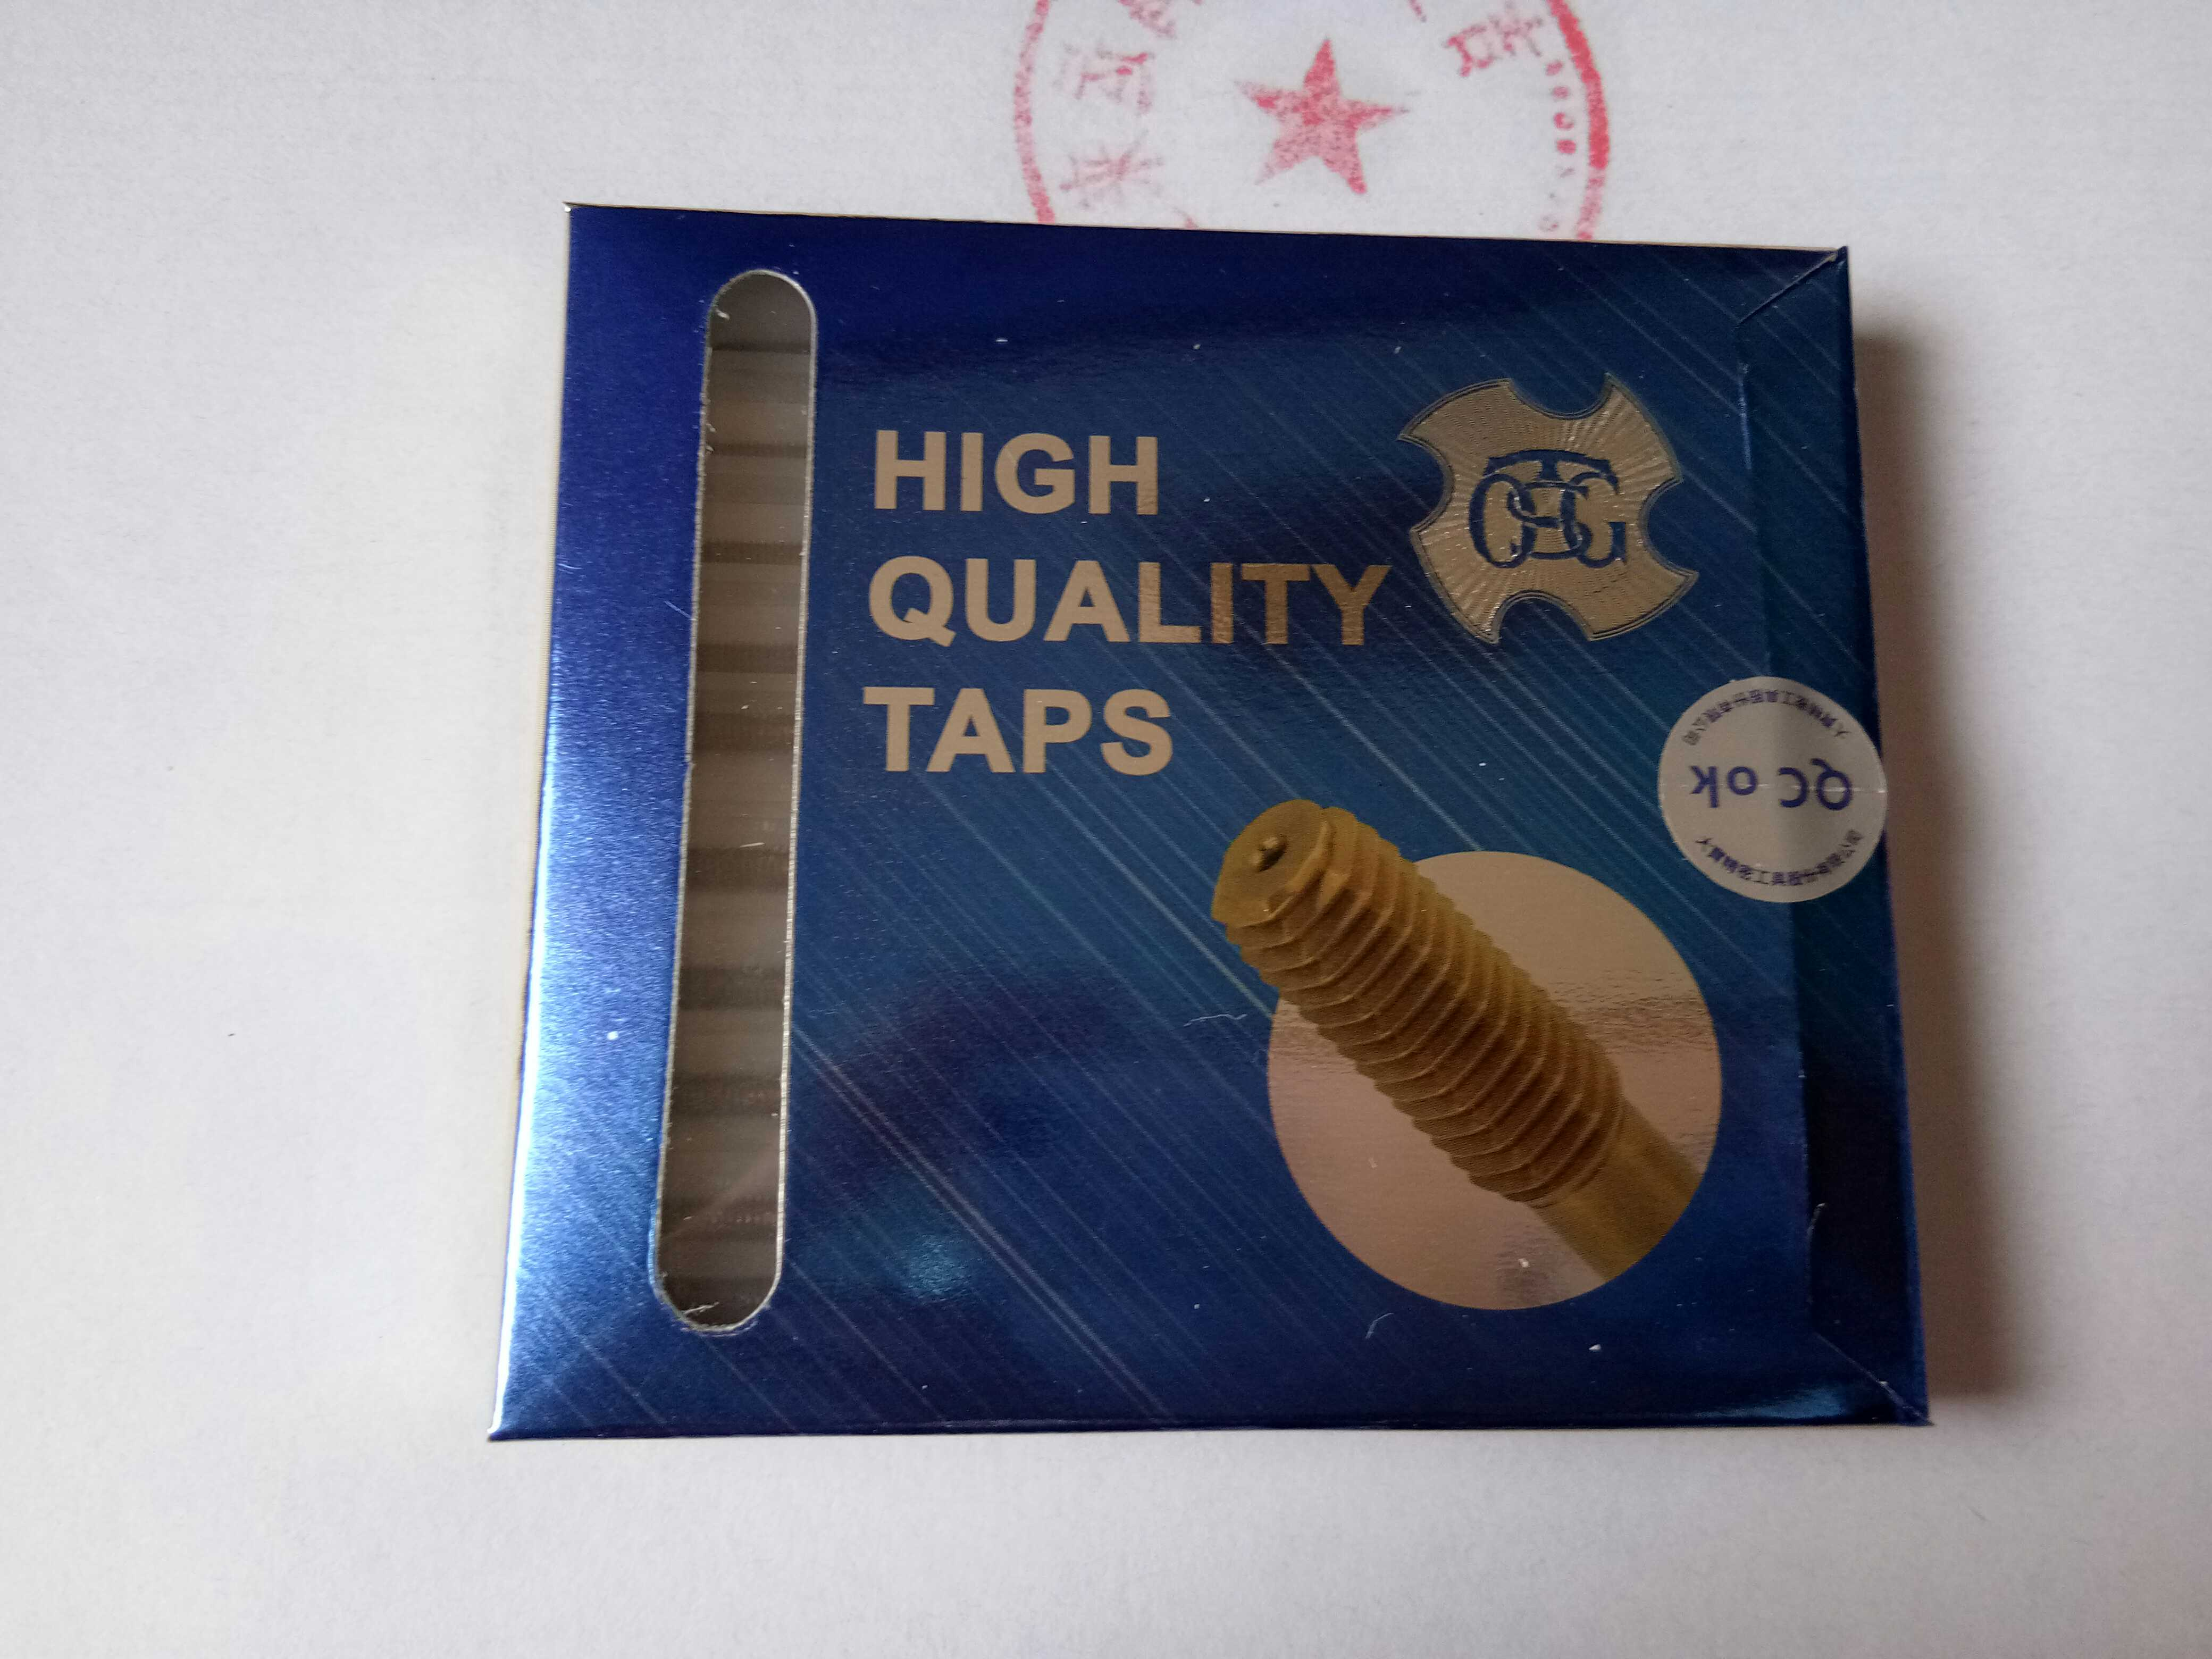 2.6-6.0 extrusion thread tapping tool, thread rolling press tool